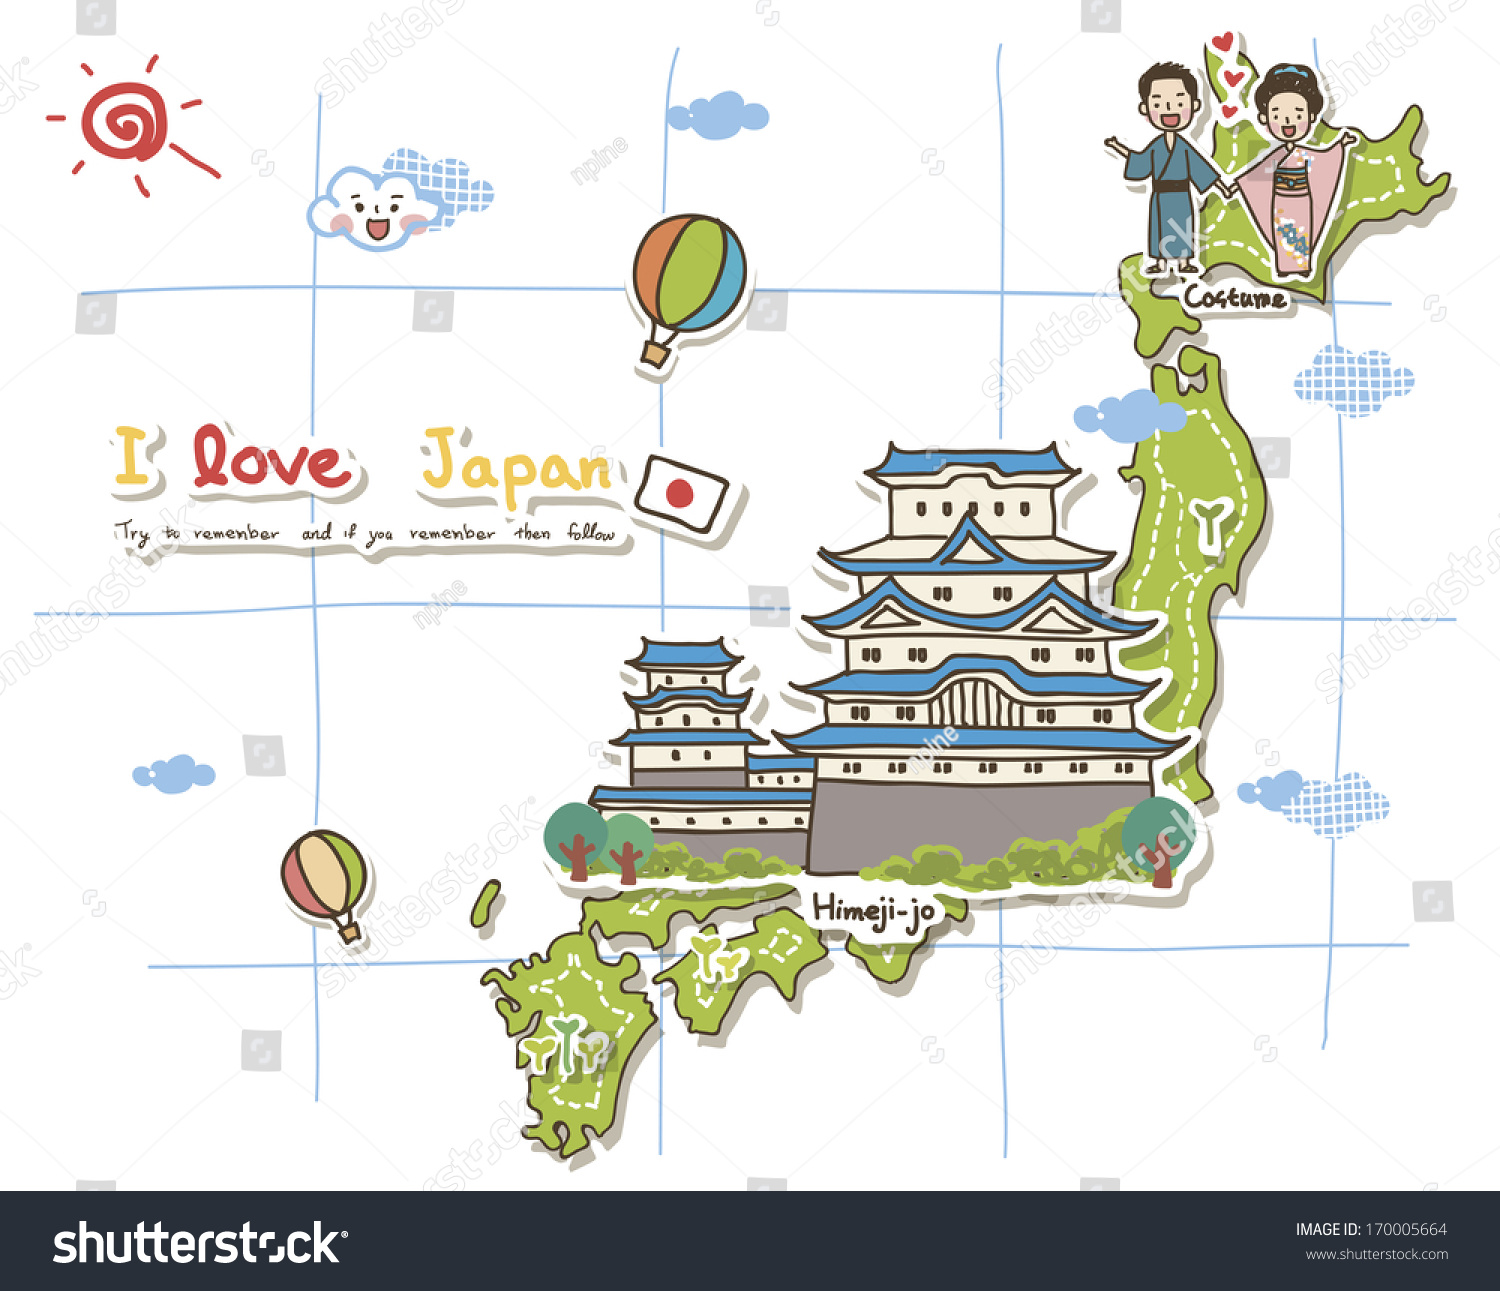 Map Depicting Tourist Attractions Japan Illustration – Japan Map For Tourist